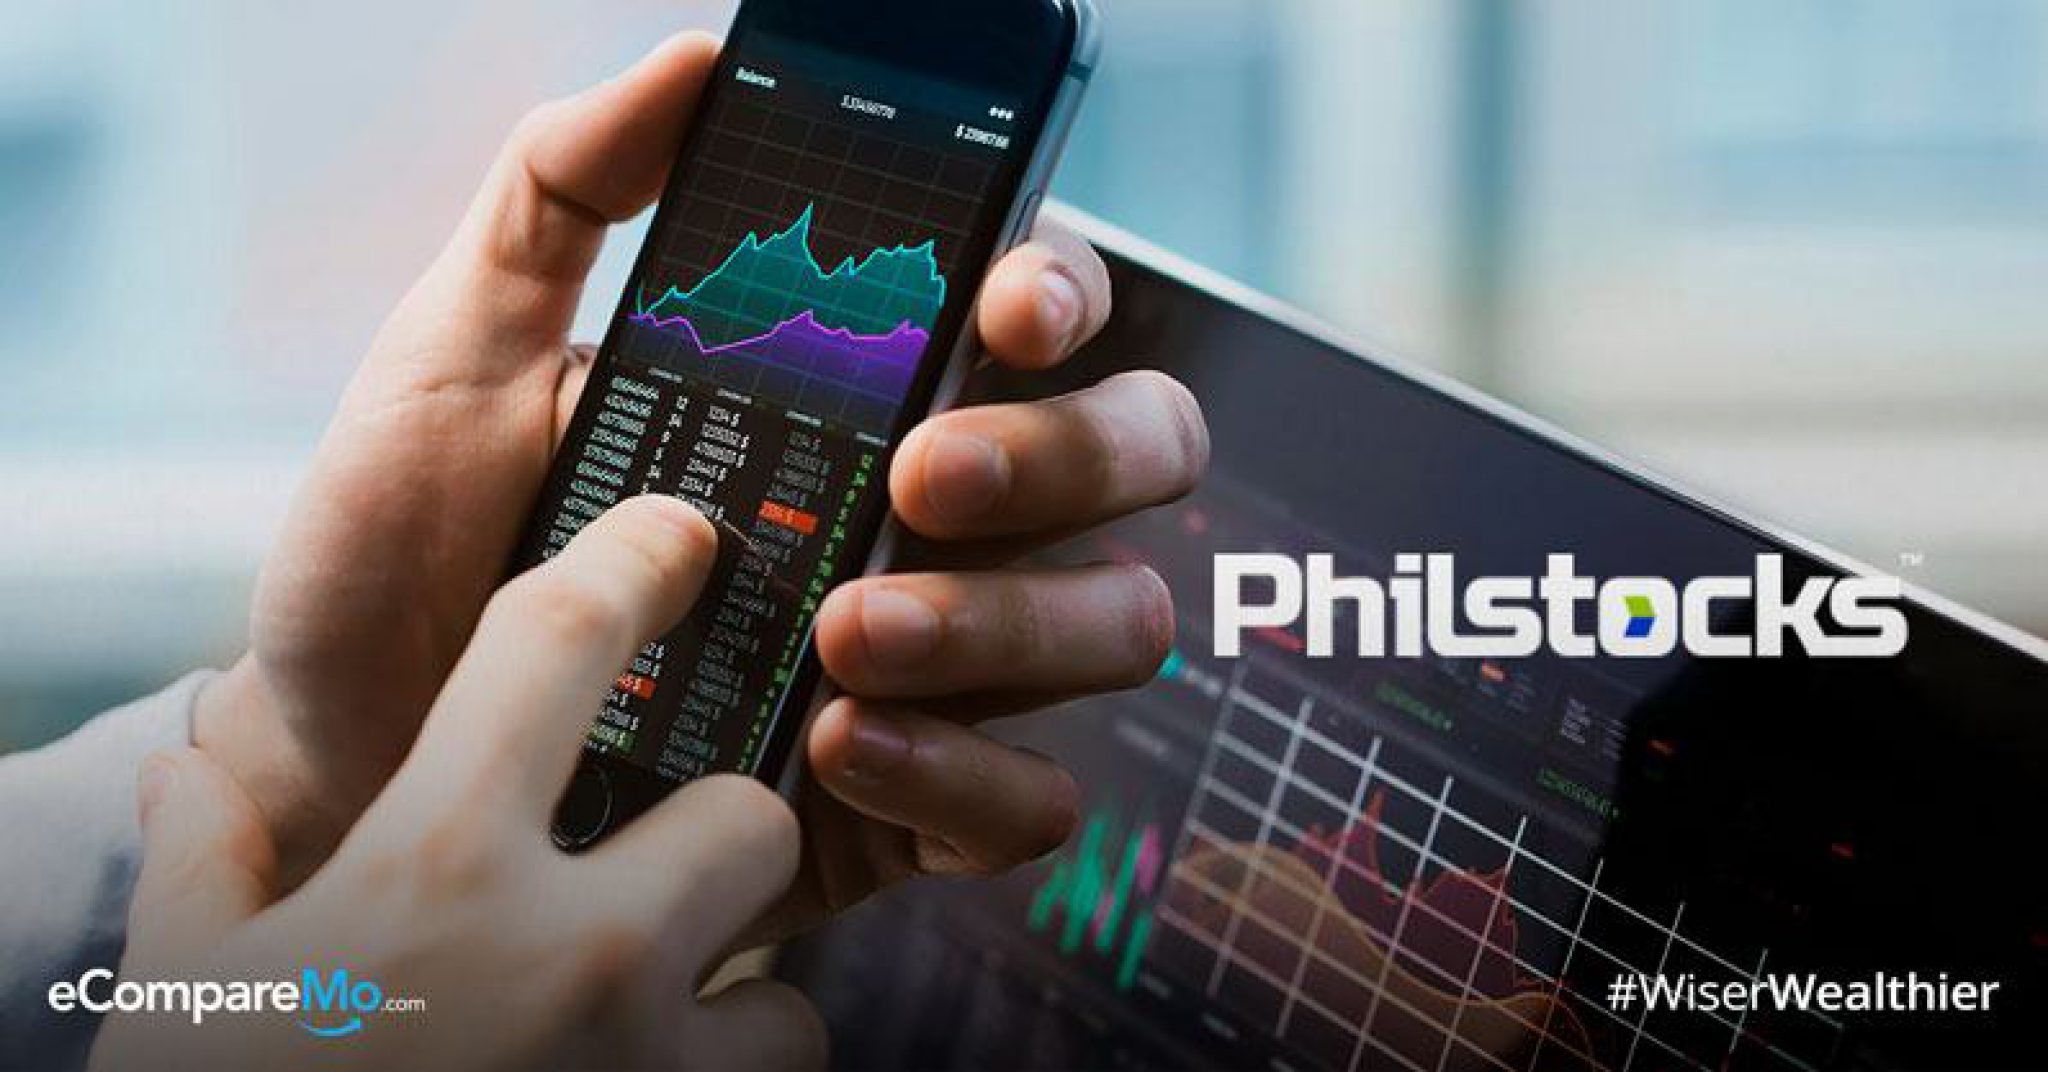 How to Open a Philstocks Account A Step by Step Guide